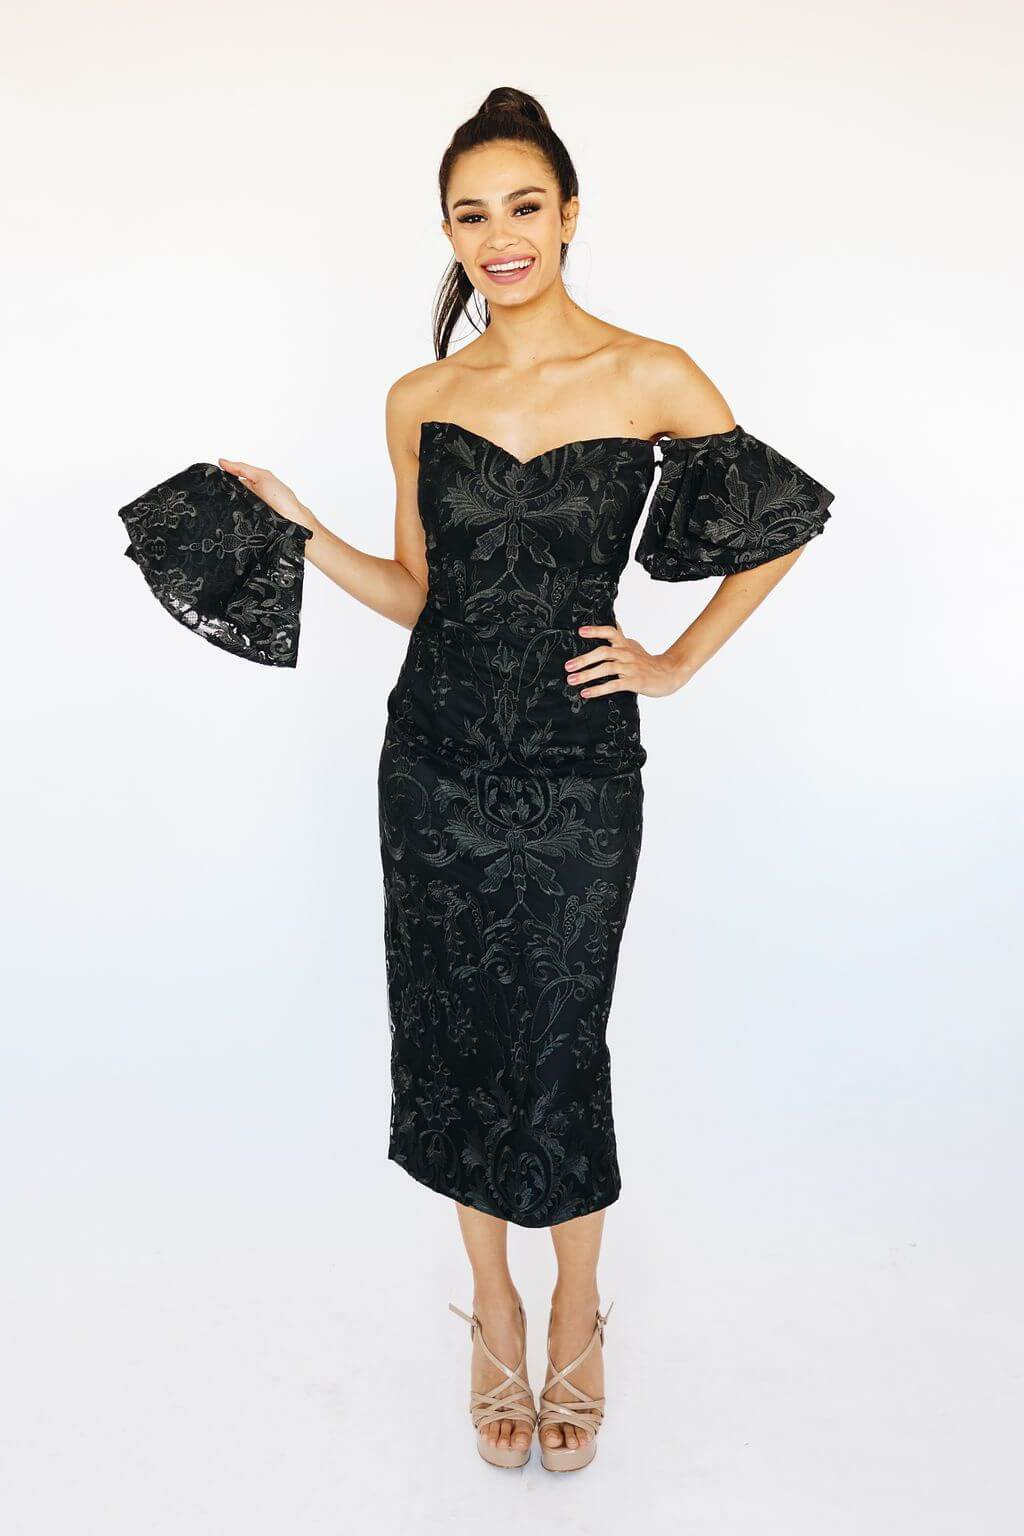 Style B38D21 Bariano Black Size 10 Tall Height Lace Wedding Guest Fitted Cocktail Dress on Queenly